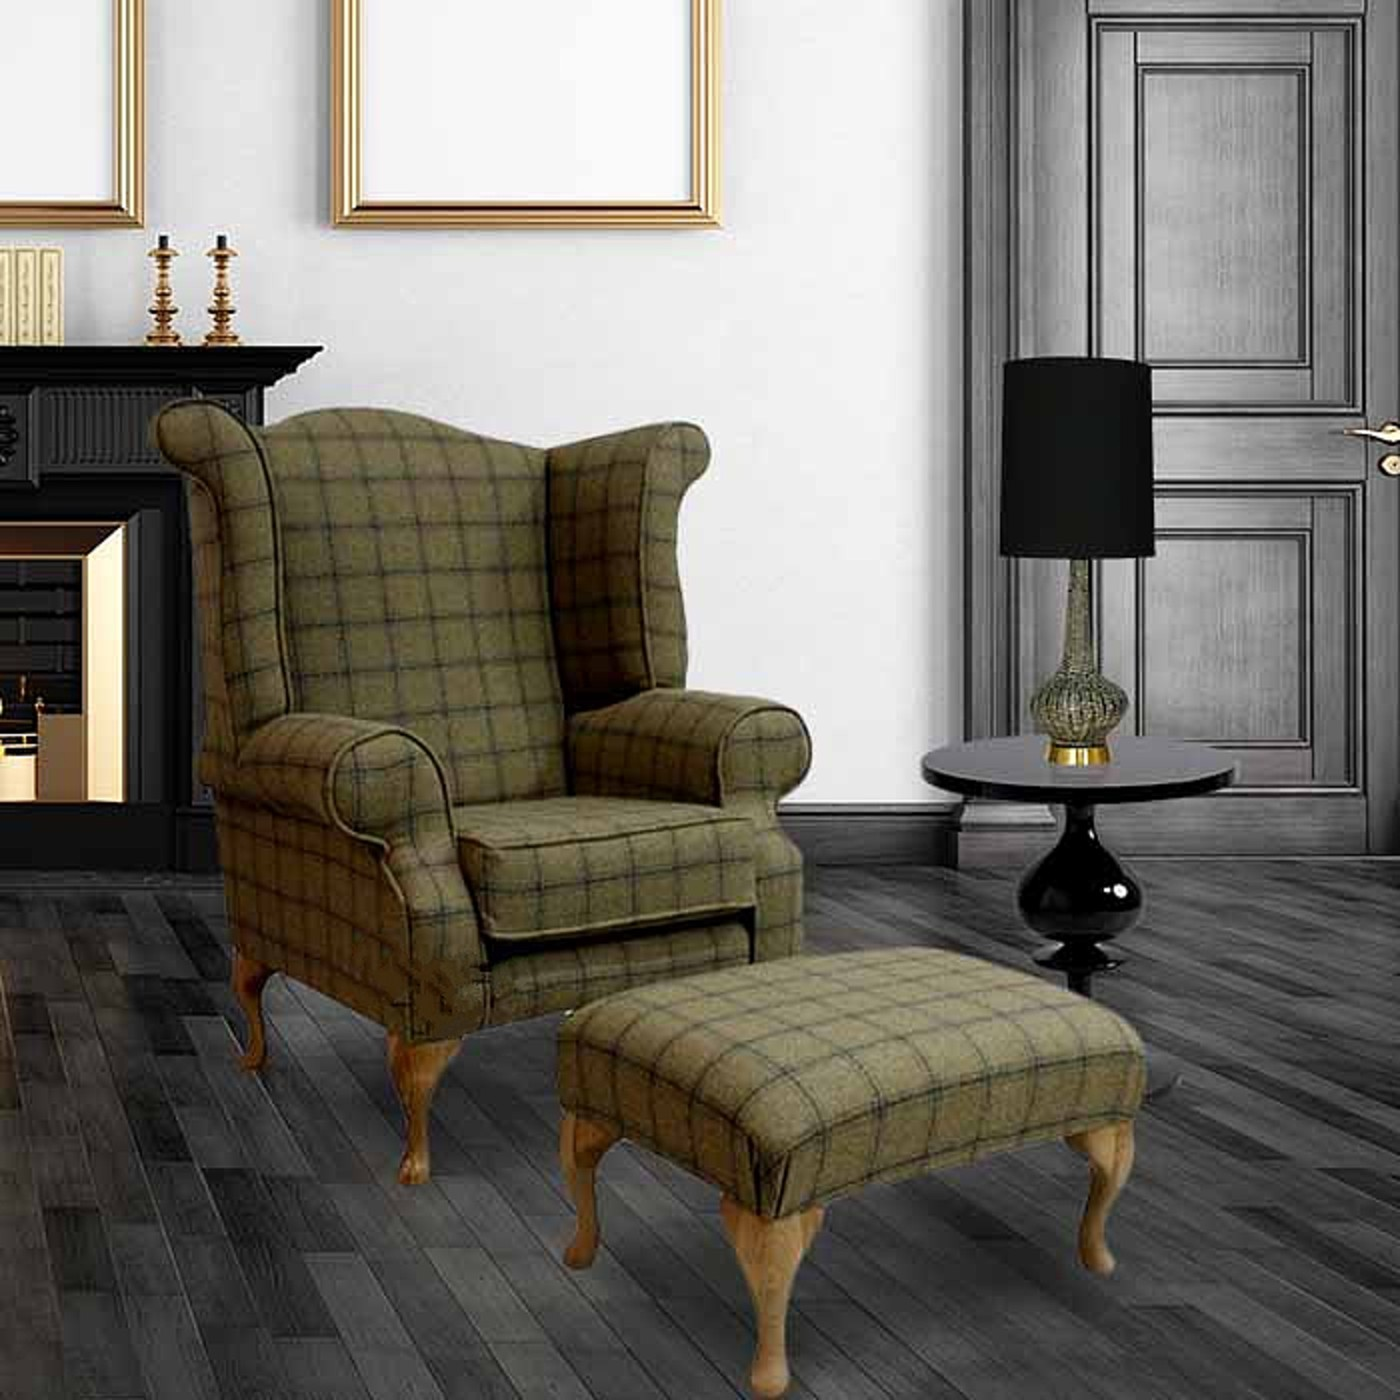 High Quality Chesterfield Edward Queen Anne Wool Tweed Althrop Topaz Wing Chair Fireside  High Back Armchair + Footstool